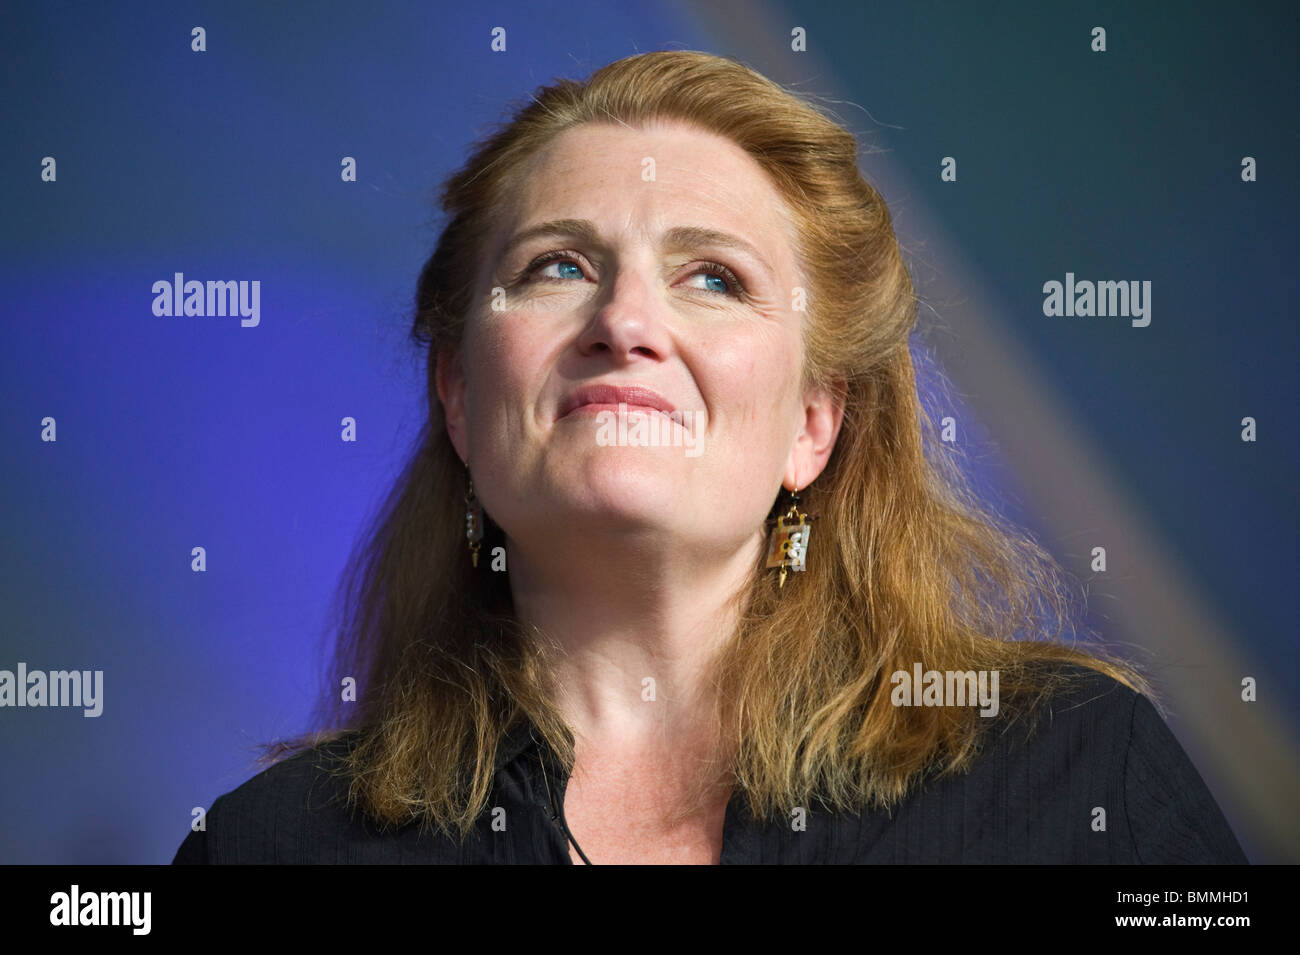 Allegra Rose Edwards huston stock photos & huston stock images - alamy